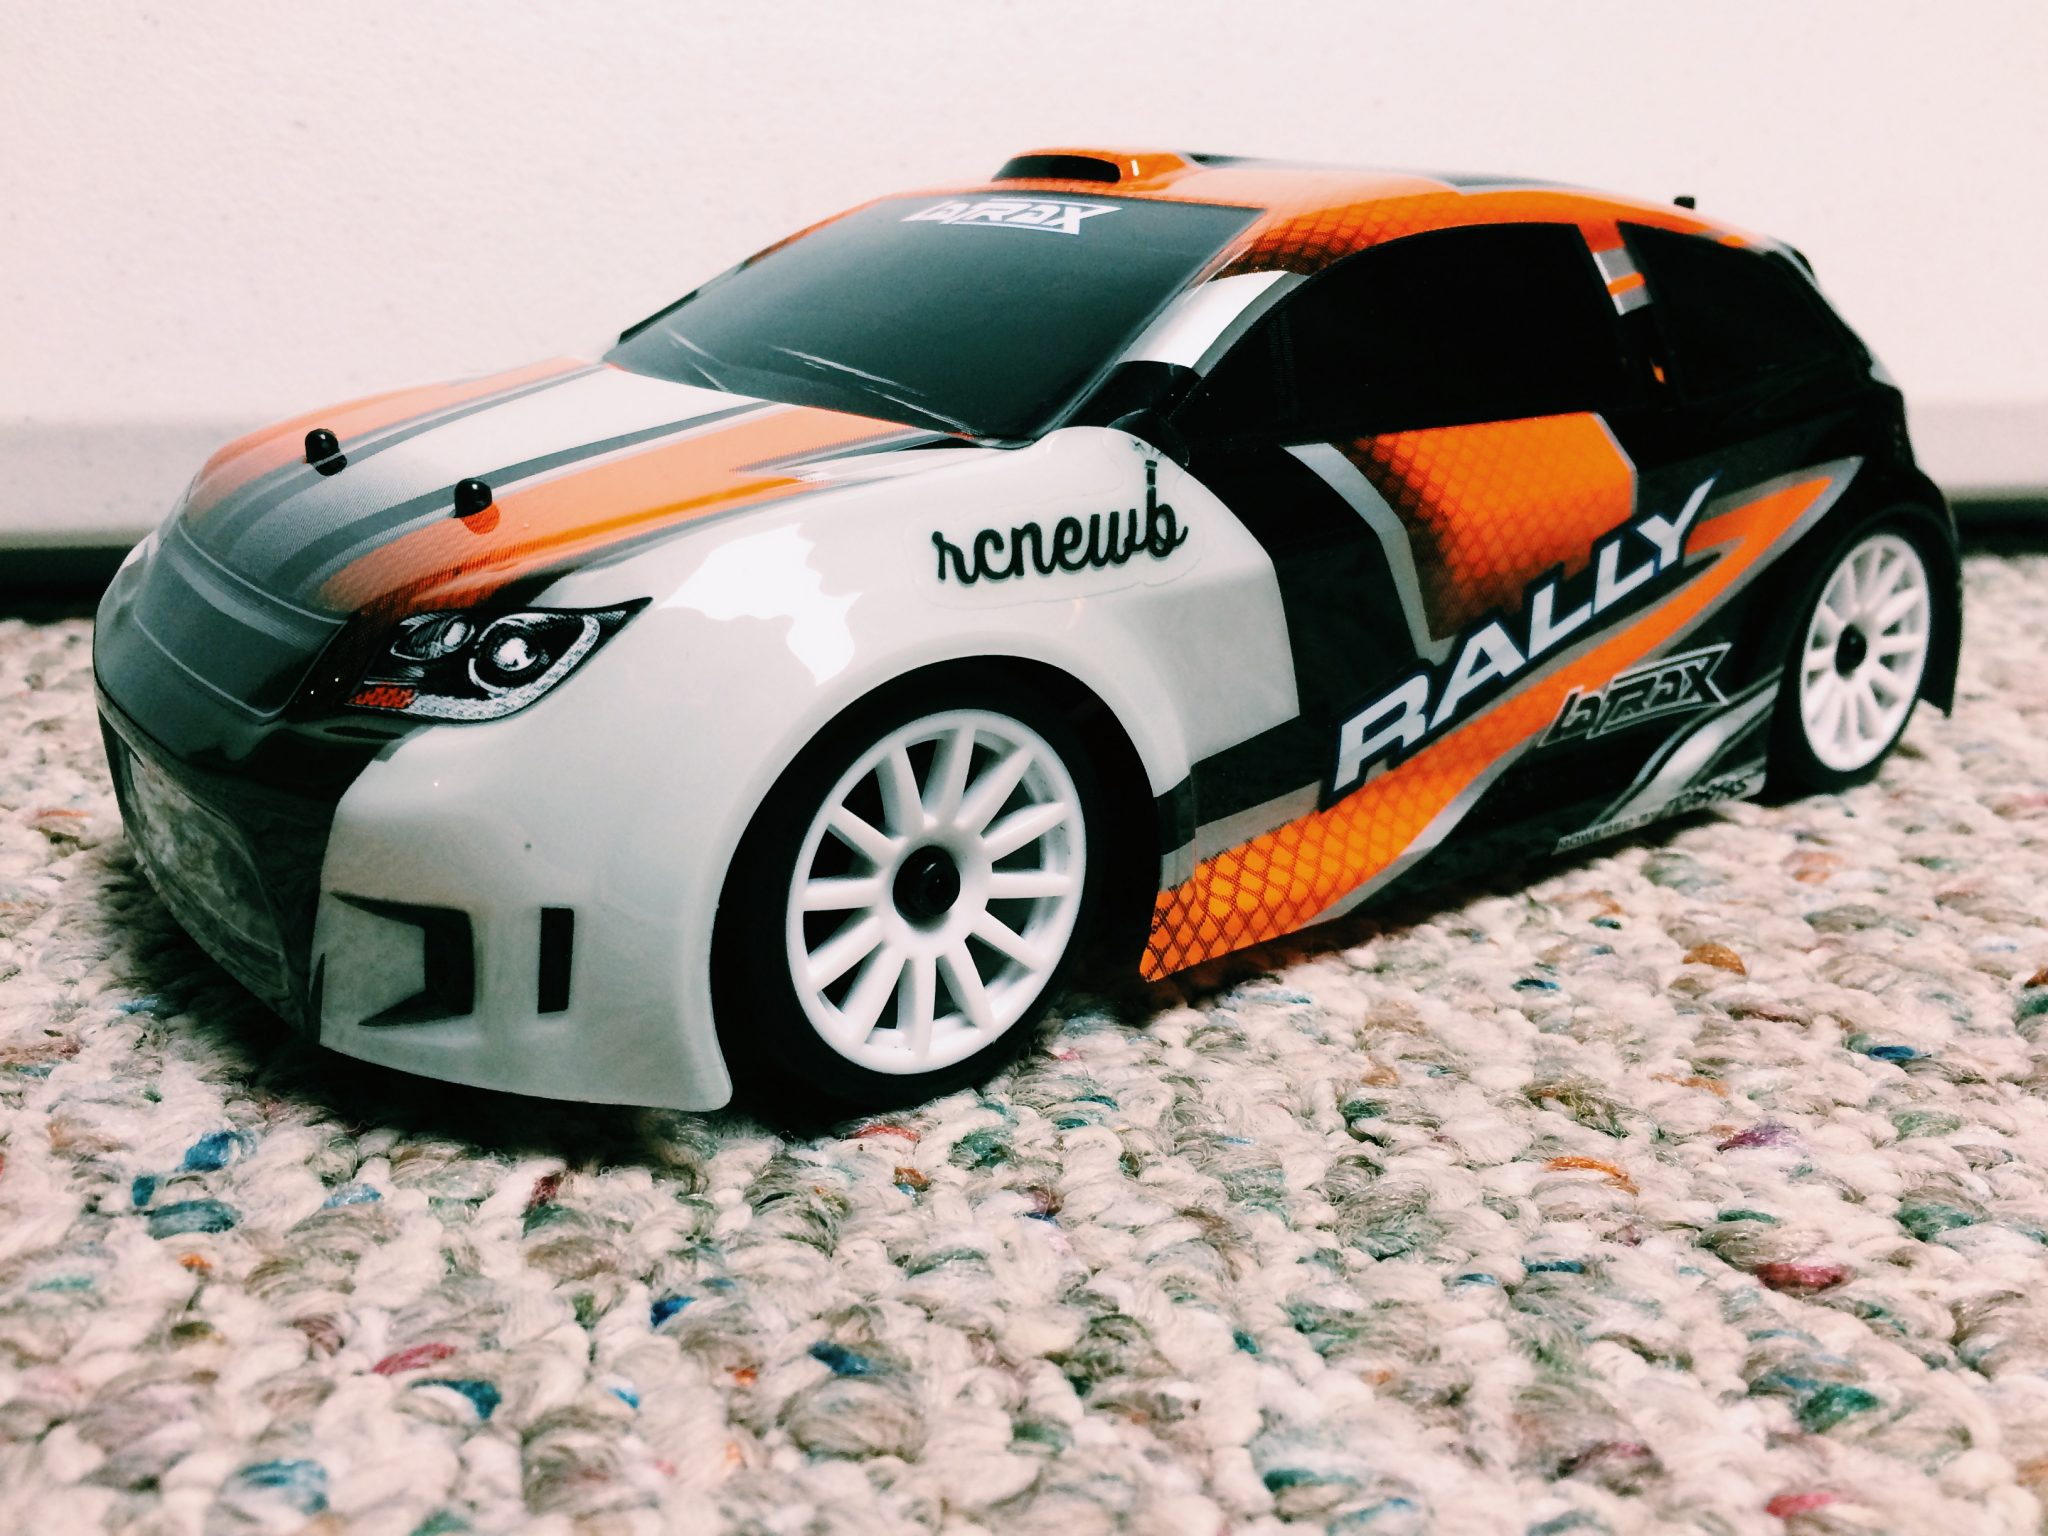 Review: LaTrax Rally 1/18 R/C Rally Car